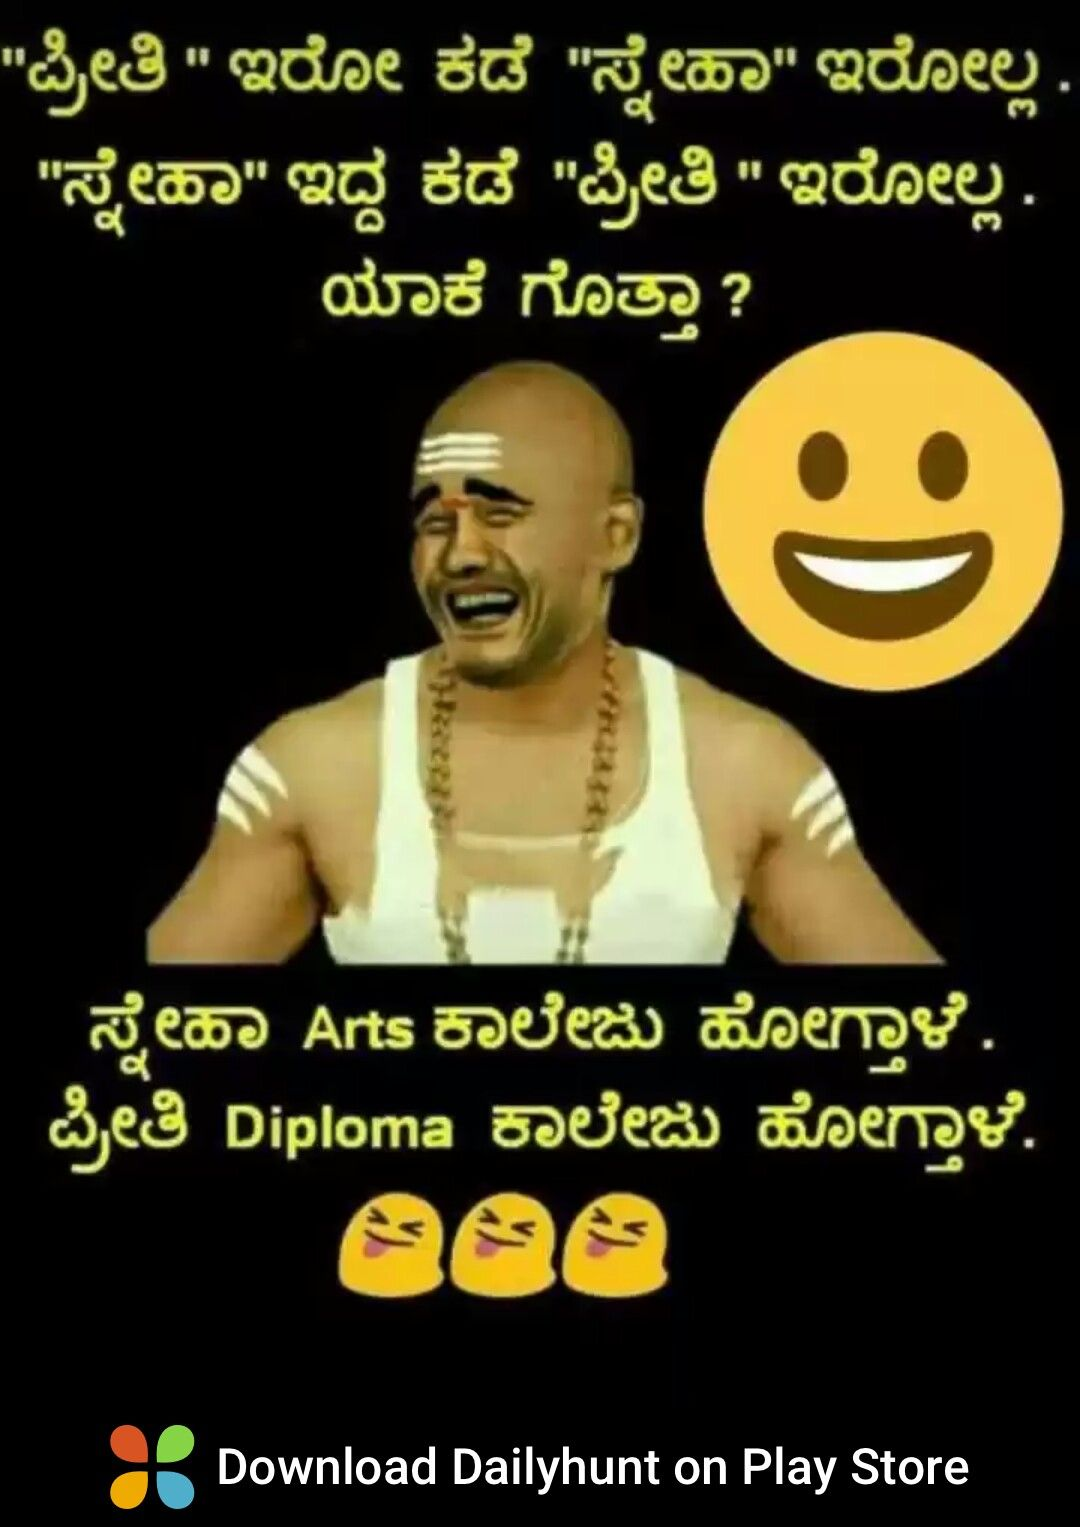 Pin By Kumar Pujari On Morning Quote Funny School Jokes Really Funny Quotes School Jokes